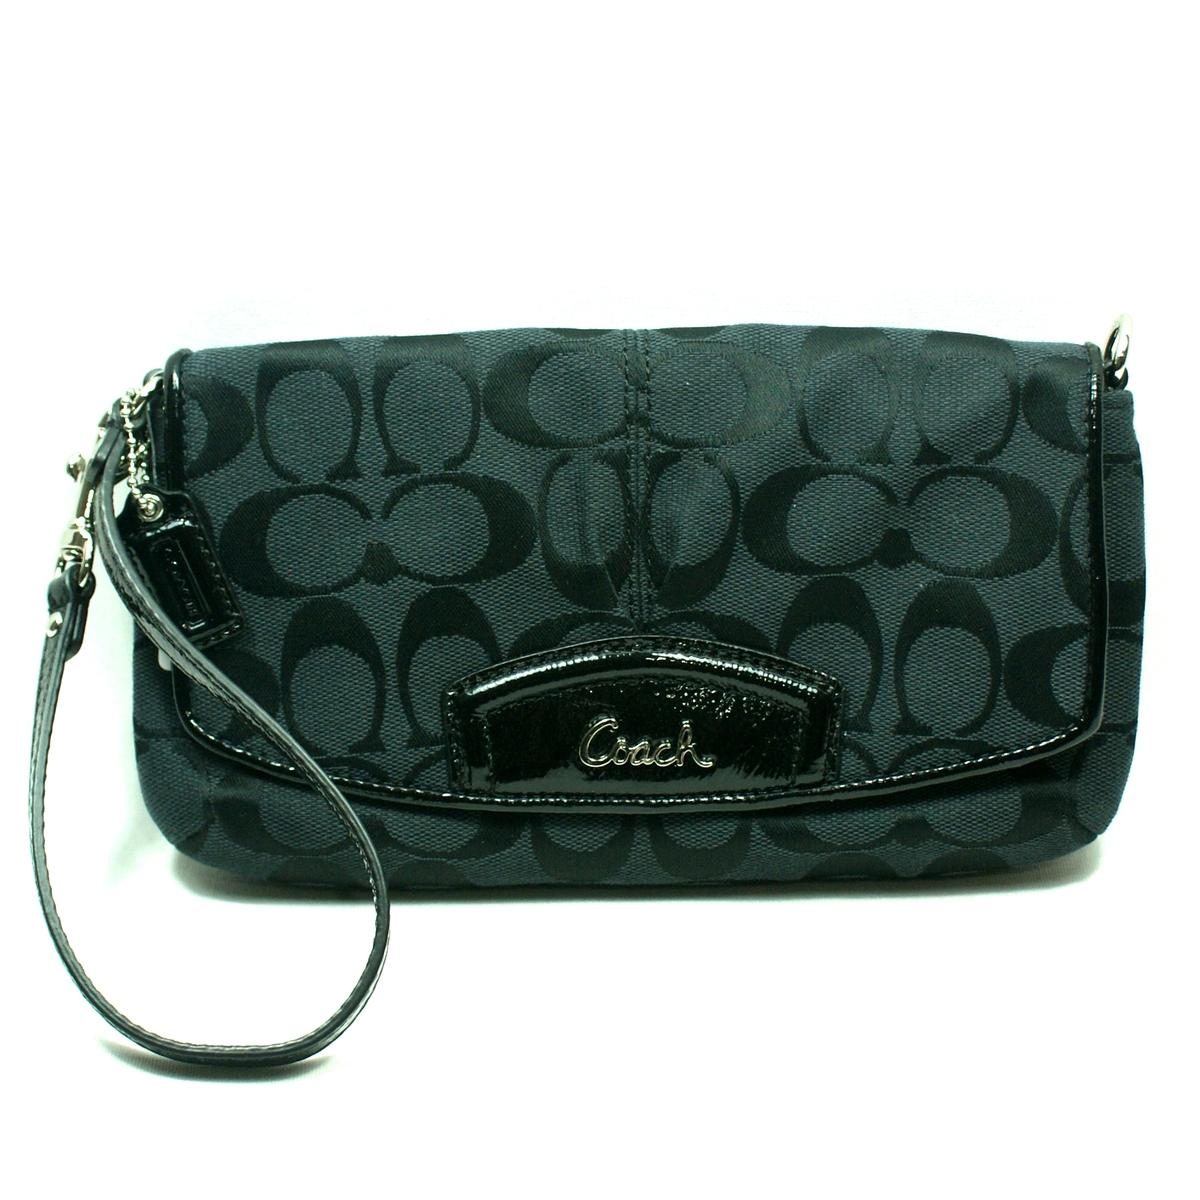 All Wallets & Wristlets Back to Handbags & Accessories; Apply. Filter By clear all. Free Pick Up In Store I.N.C. Molyy Party Wristlet Clutch, Created for Macy's $ Free ship at $ Enjoy Free Shipping at $75! See exclusions.